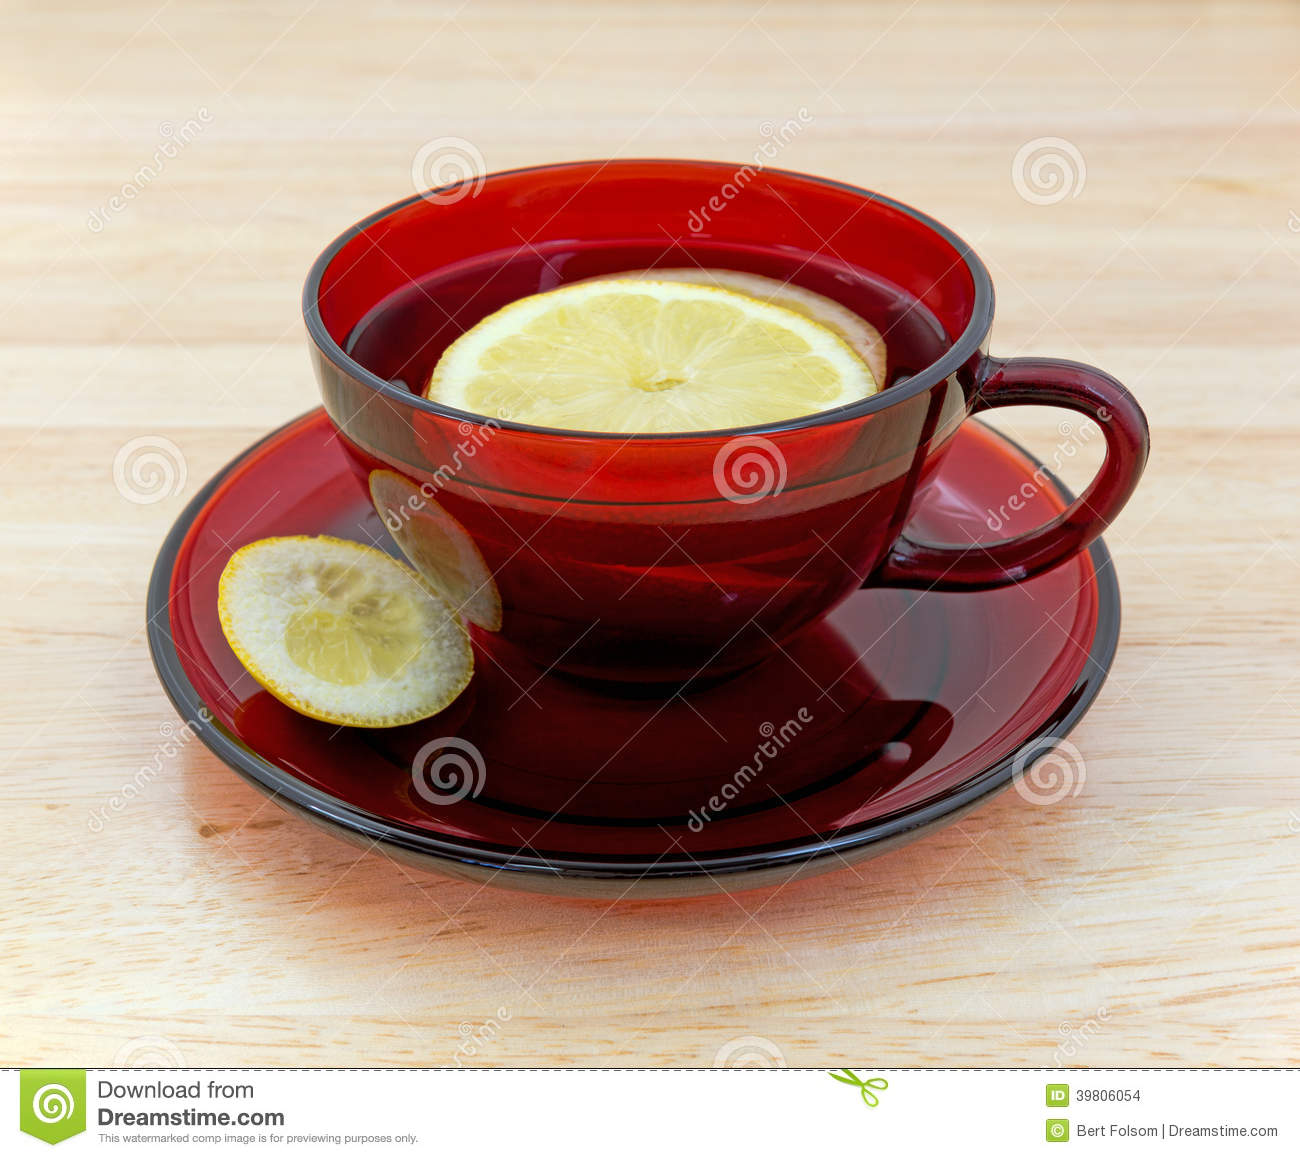 Lemon tea in cup and saucer with rind